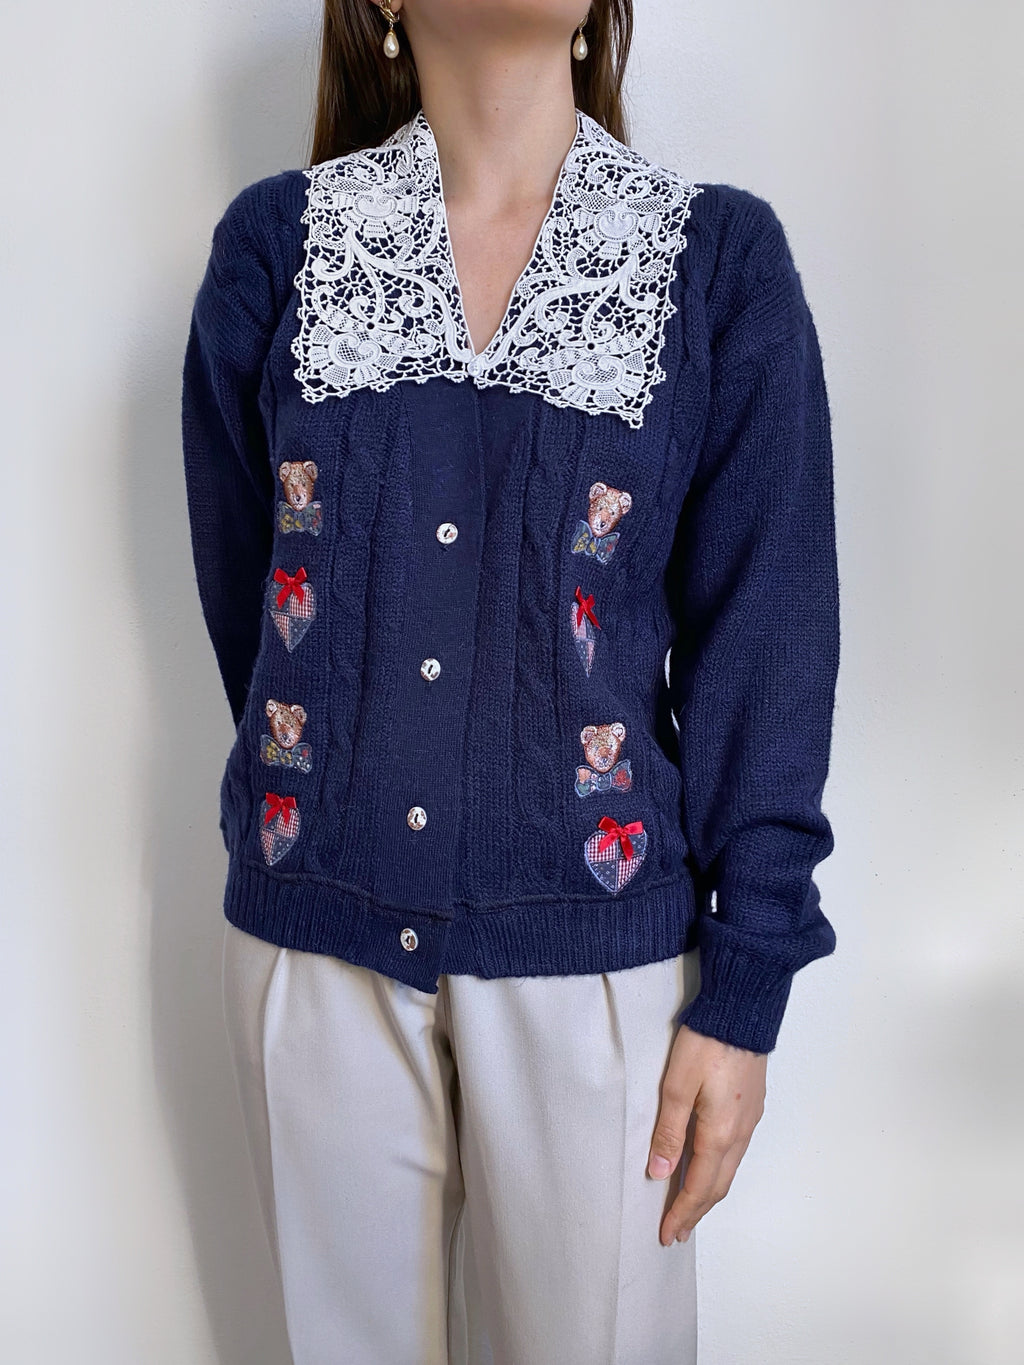 Vintage Italian alpaca embroidered blue cardigan